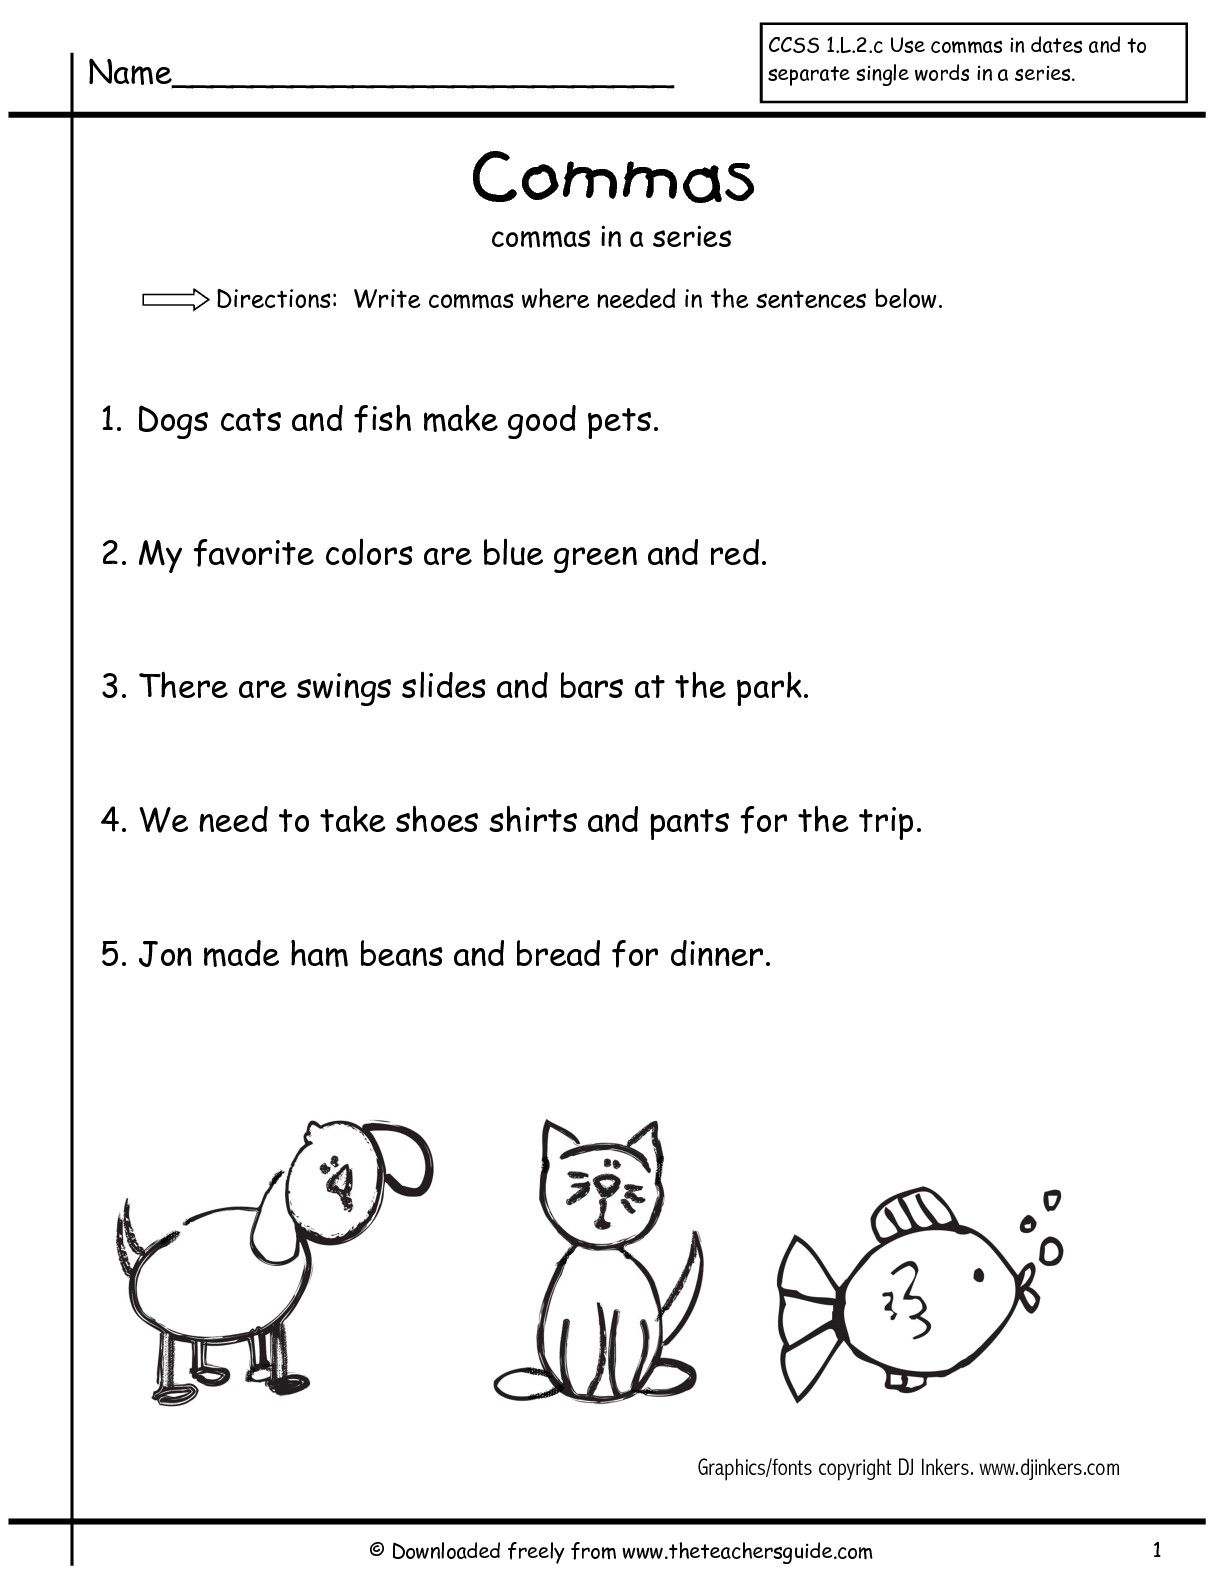 Free Worksheet Grammar Worksheets For 1st Grade practice capitalization leveon bell printables and grade 2 grammar worksheets commas in a series first free comma worksheets